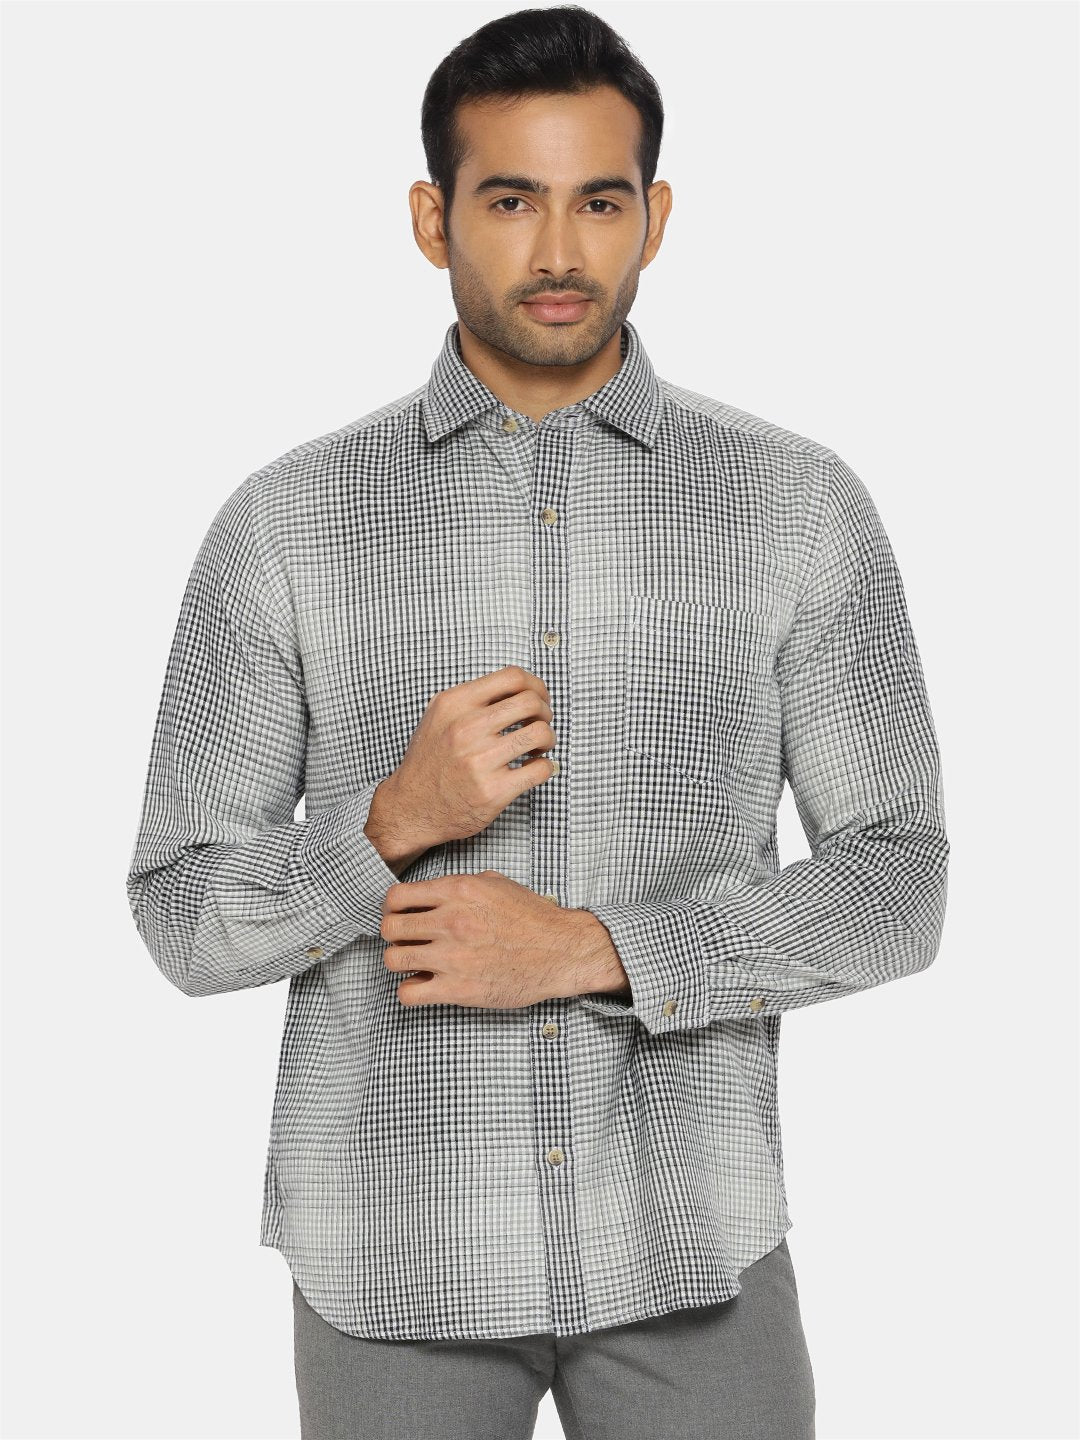 Black & white check regular collared shirt